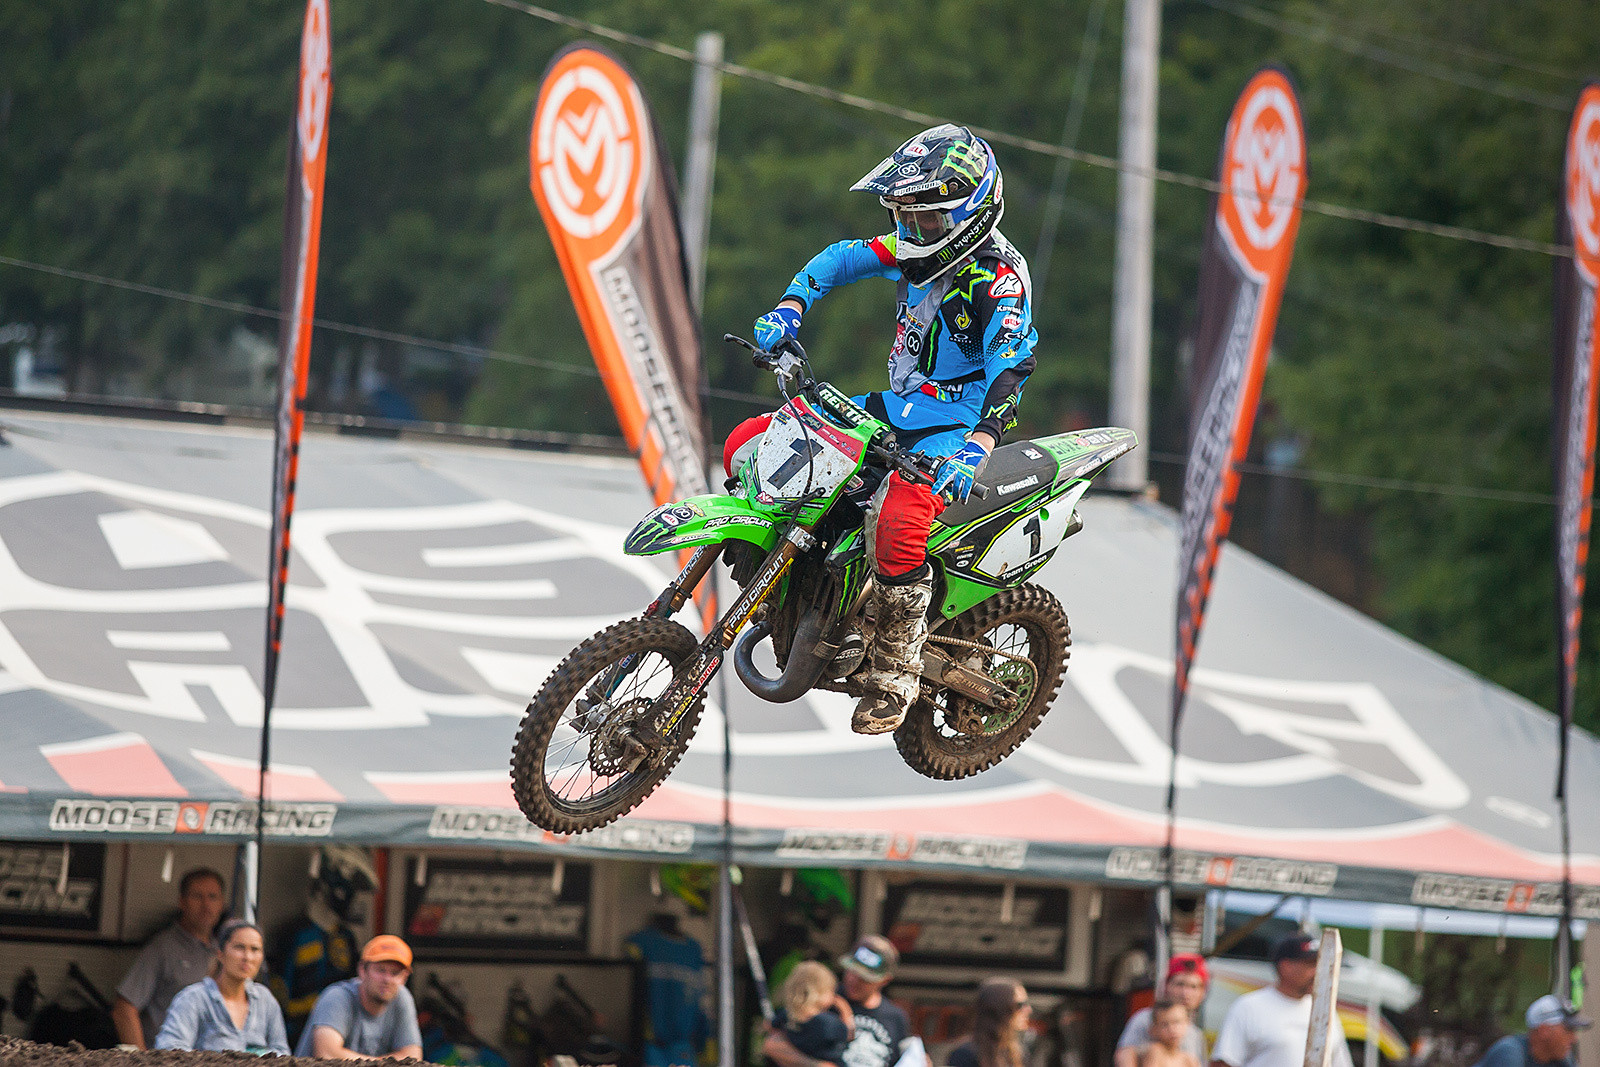 If Kawasaki Team Green's Jett Reynolds keeps up his fast riding and good fortune he will add two more titles to the eight consecutive he already has (and that's the record!)